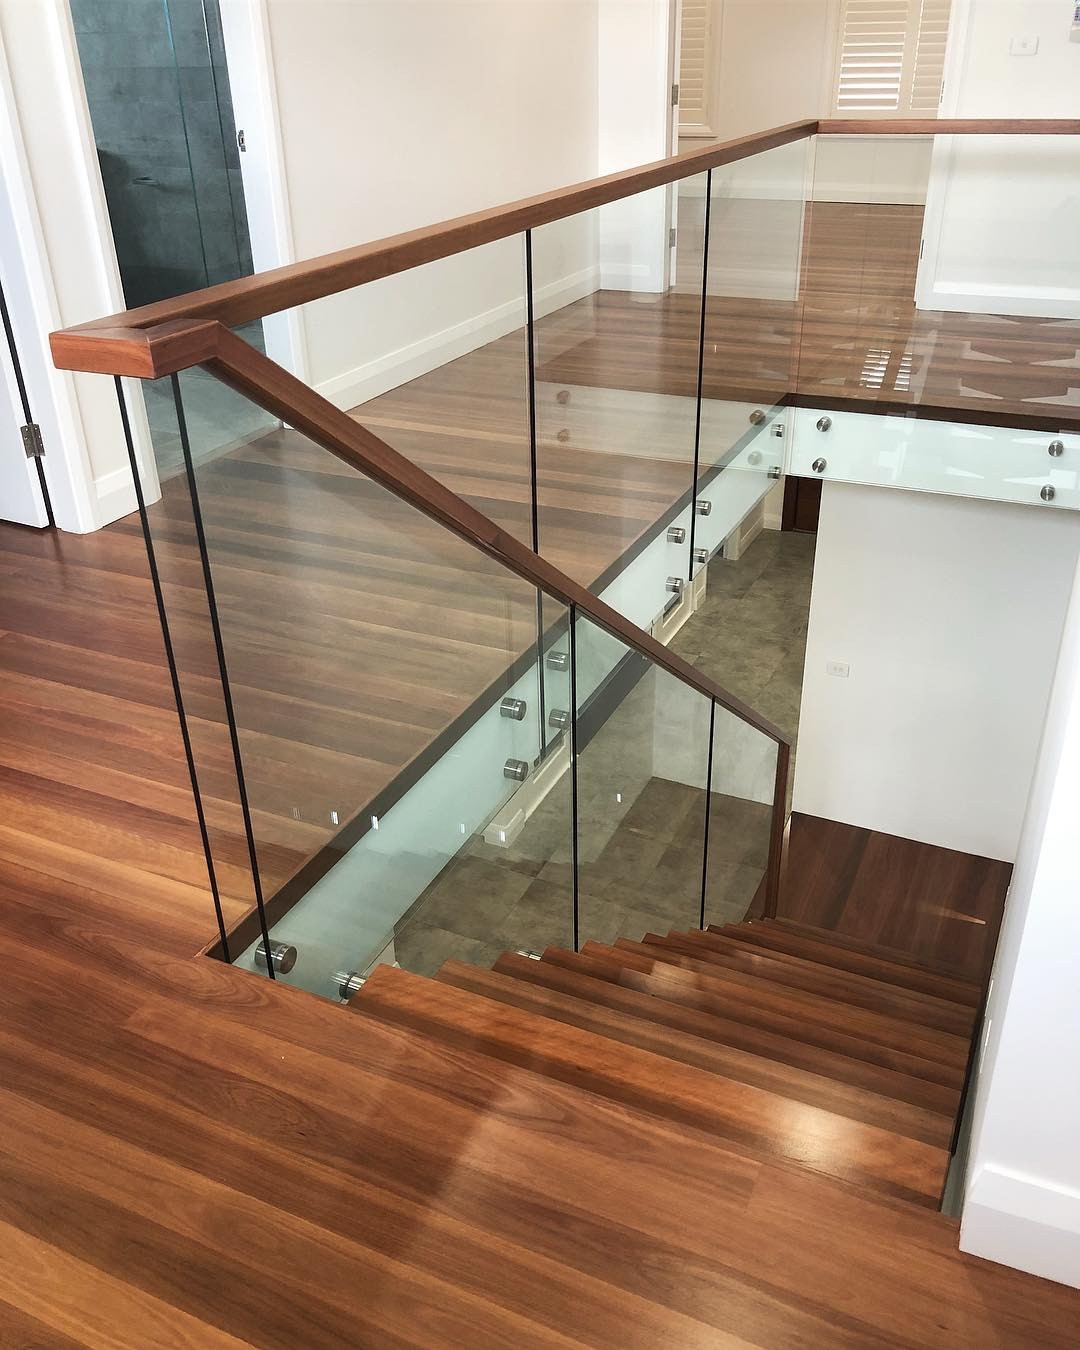 Designer Staircase Monostringer steel spine staircase with solid Australian Hardwood tread, glass Baluster and Hardwood handmade handrail supplied and installed by Timber Floors Pty Ltd